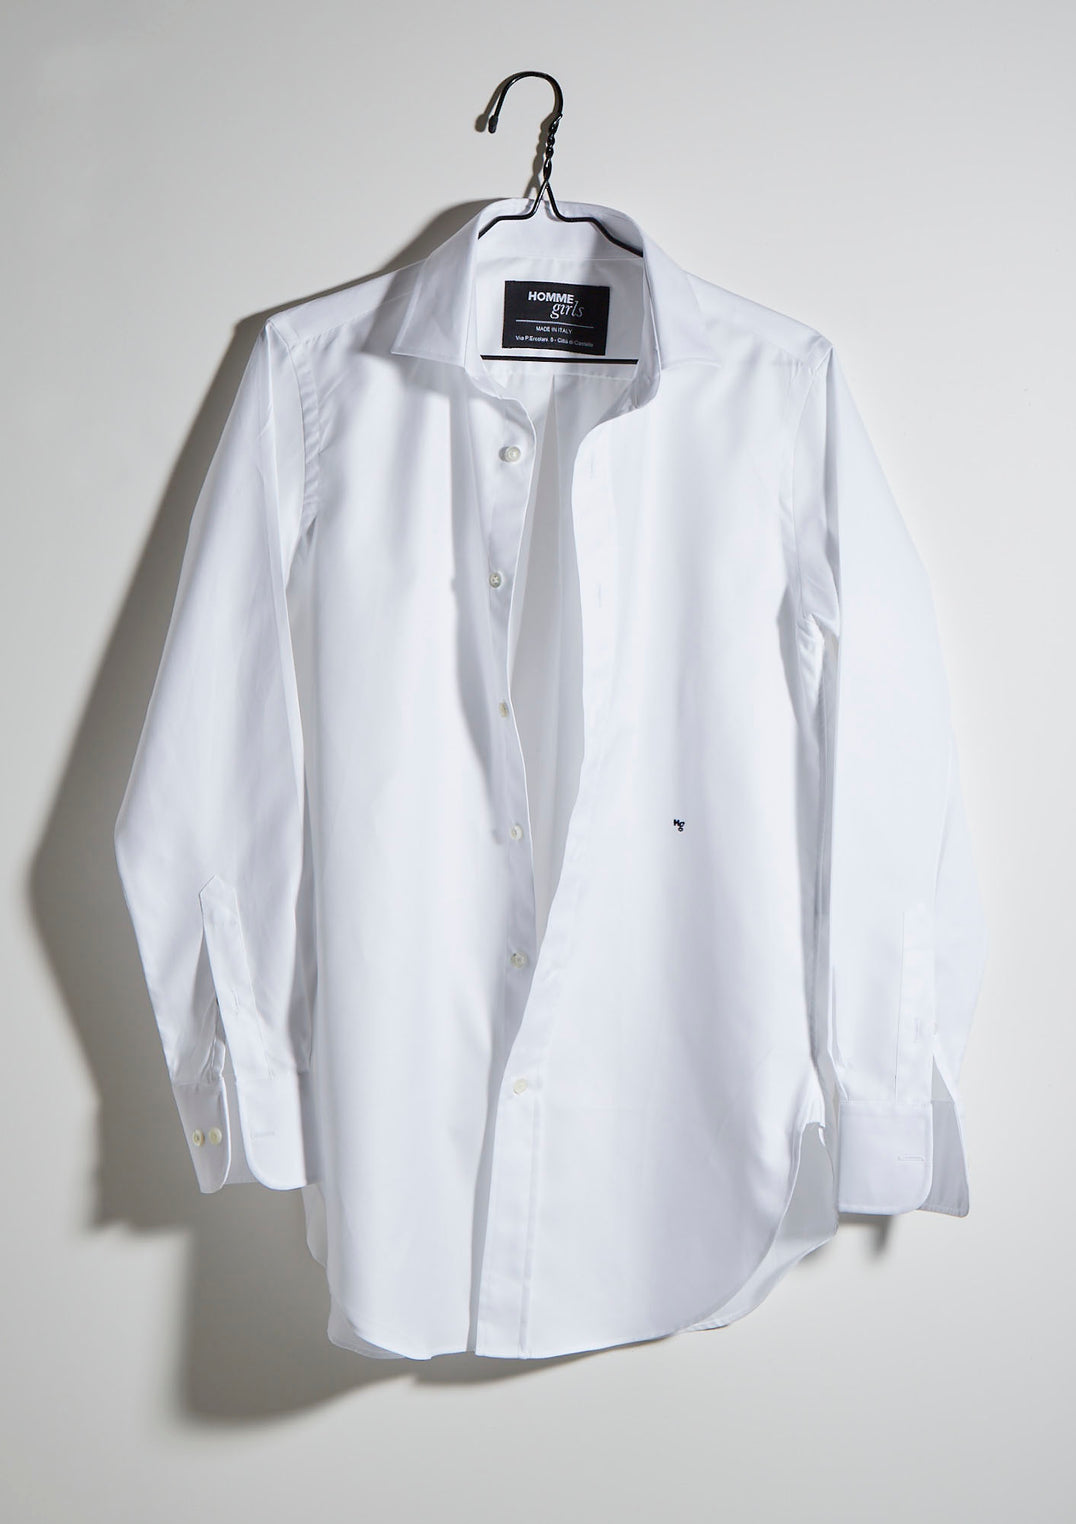 Men's Classic Shirt in White